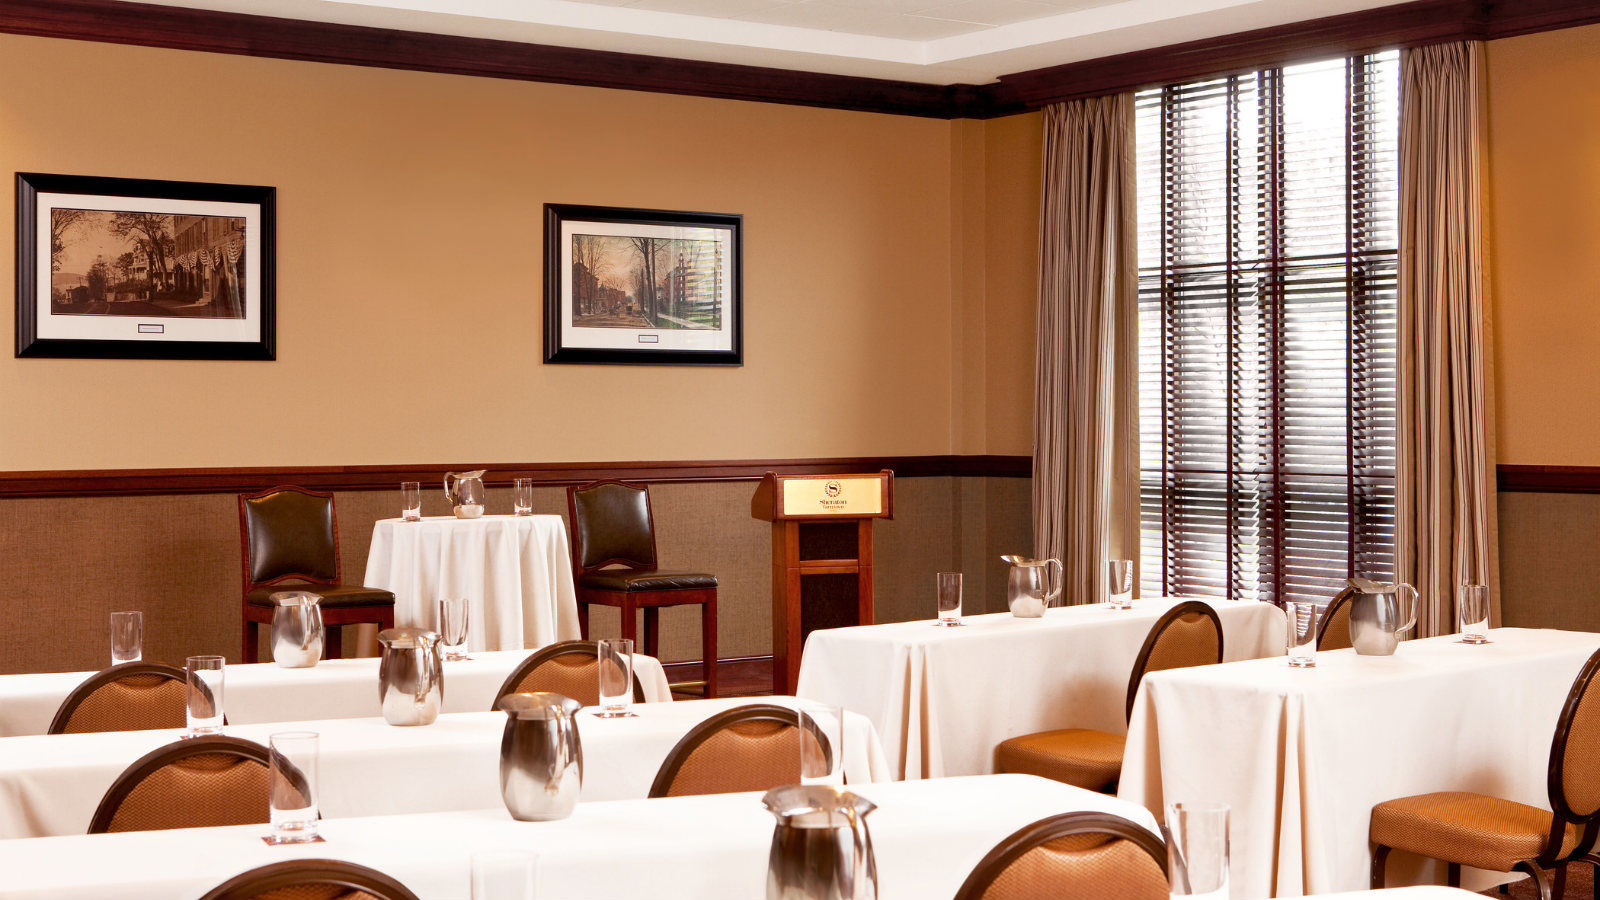 Tarrytown Corporate Meeting Venue | Classroom style meeting room